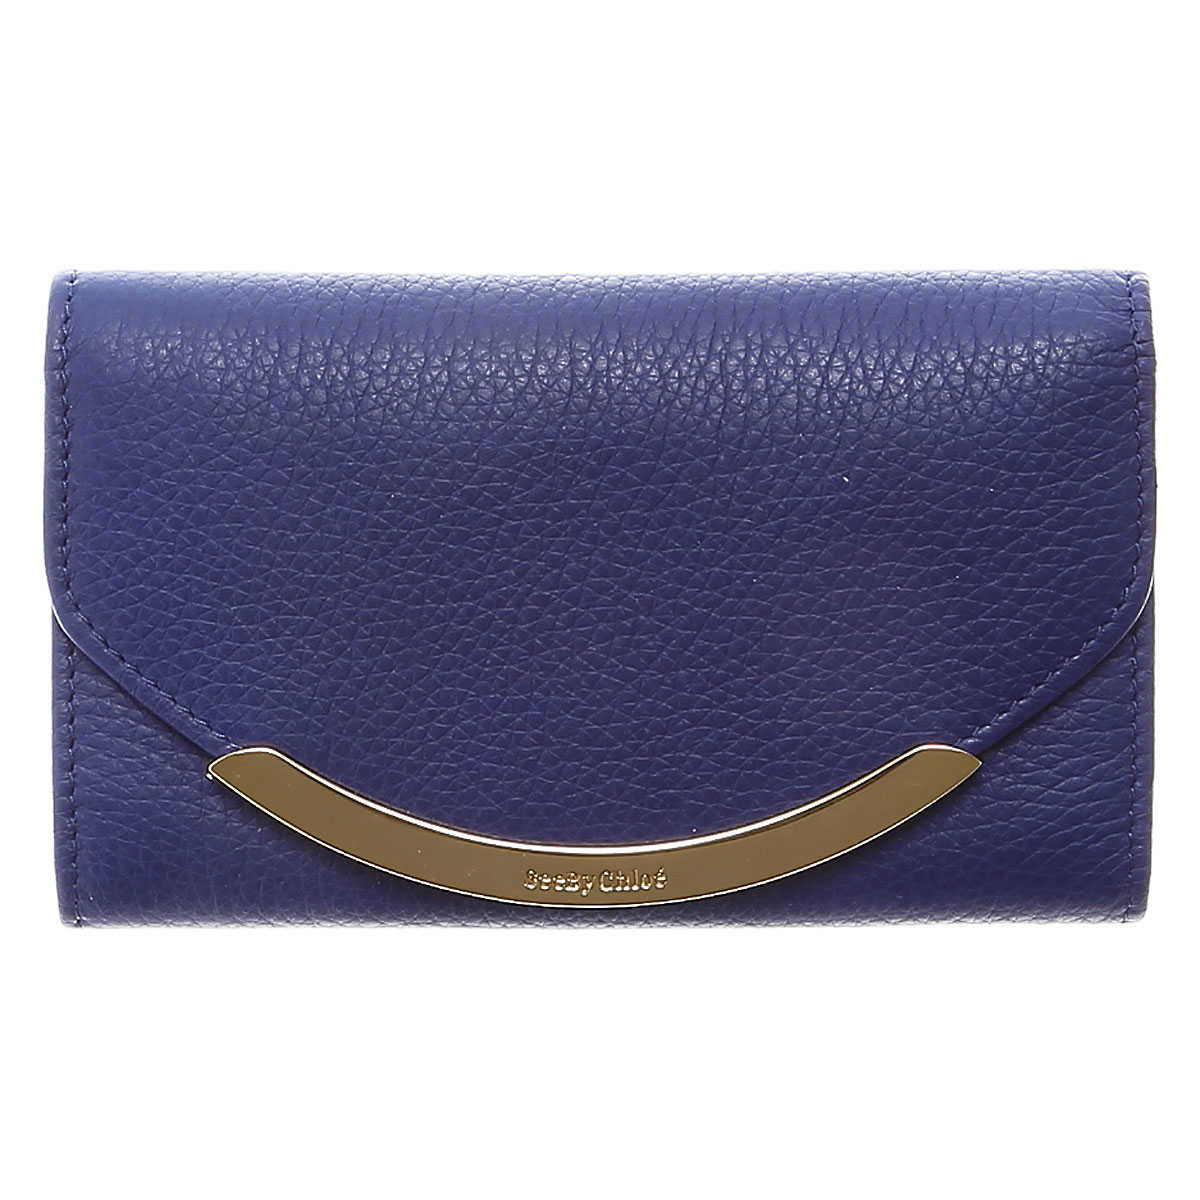 See By Chloe Wallet for Women Blue SE - GOOFASH